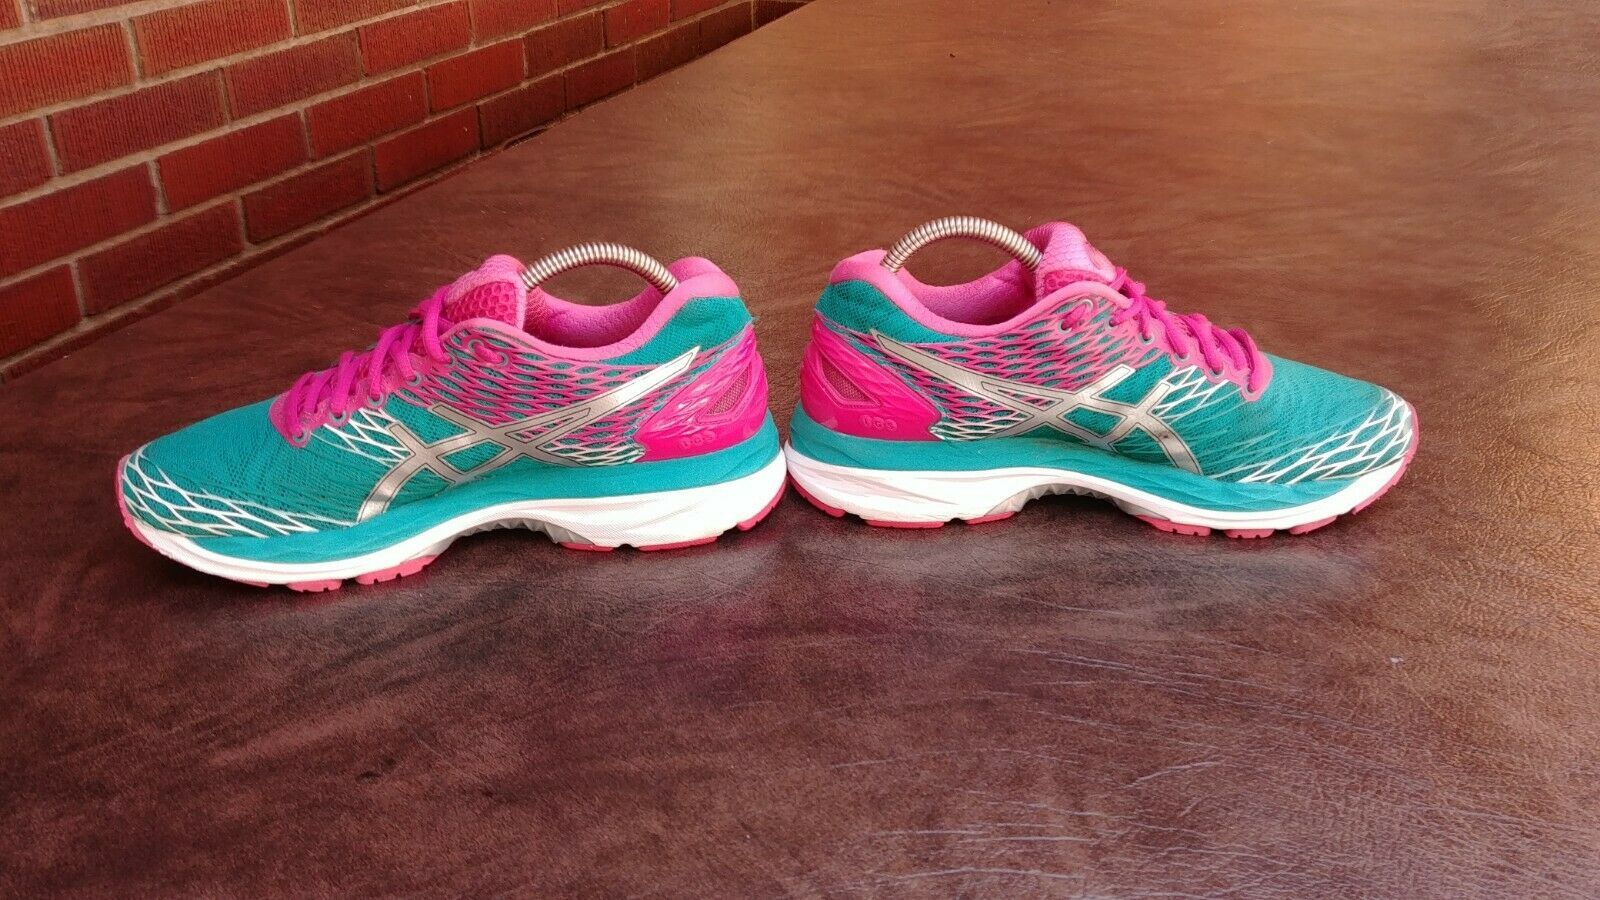 Womens Asics Gel Nimbus 18 Running Shoes SZ 7 Used Sneakers Trainers image 5